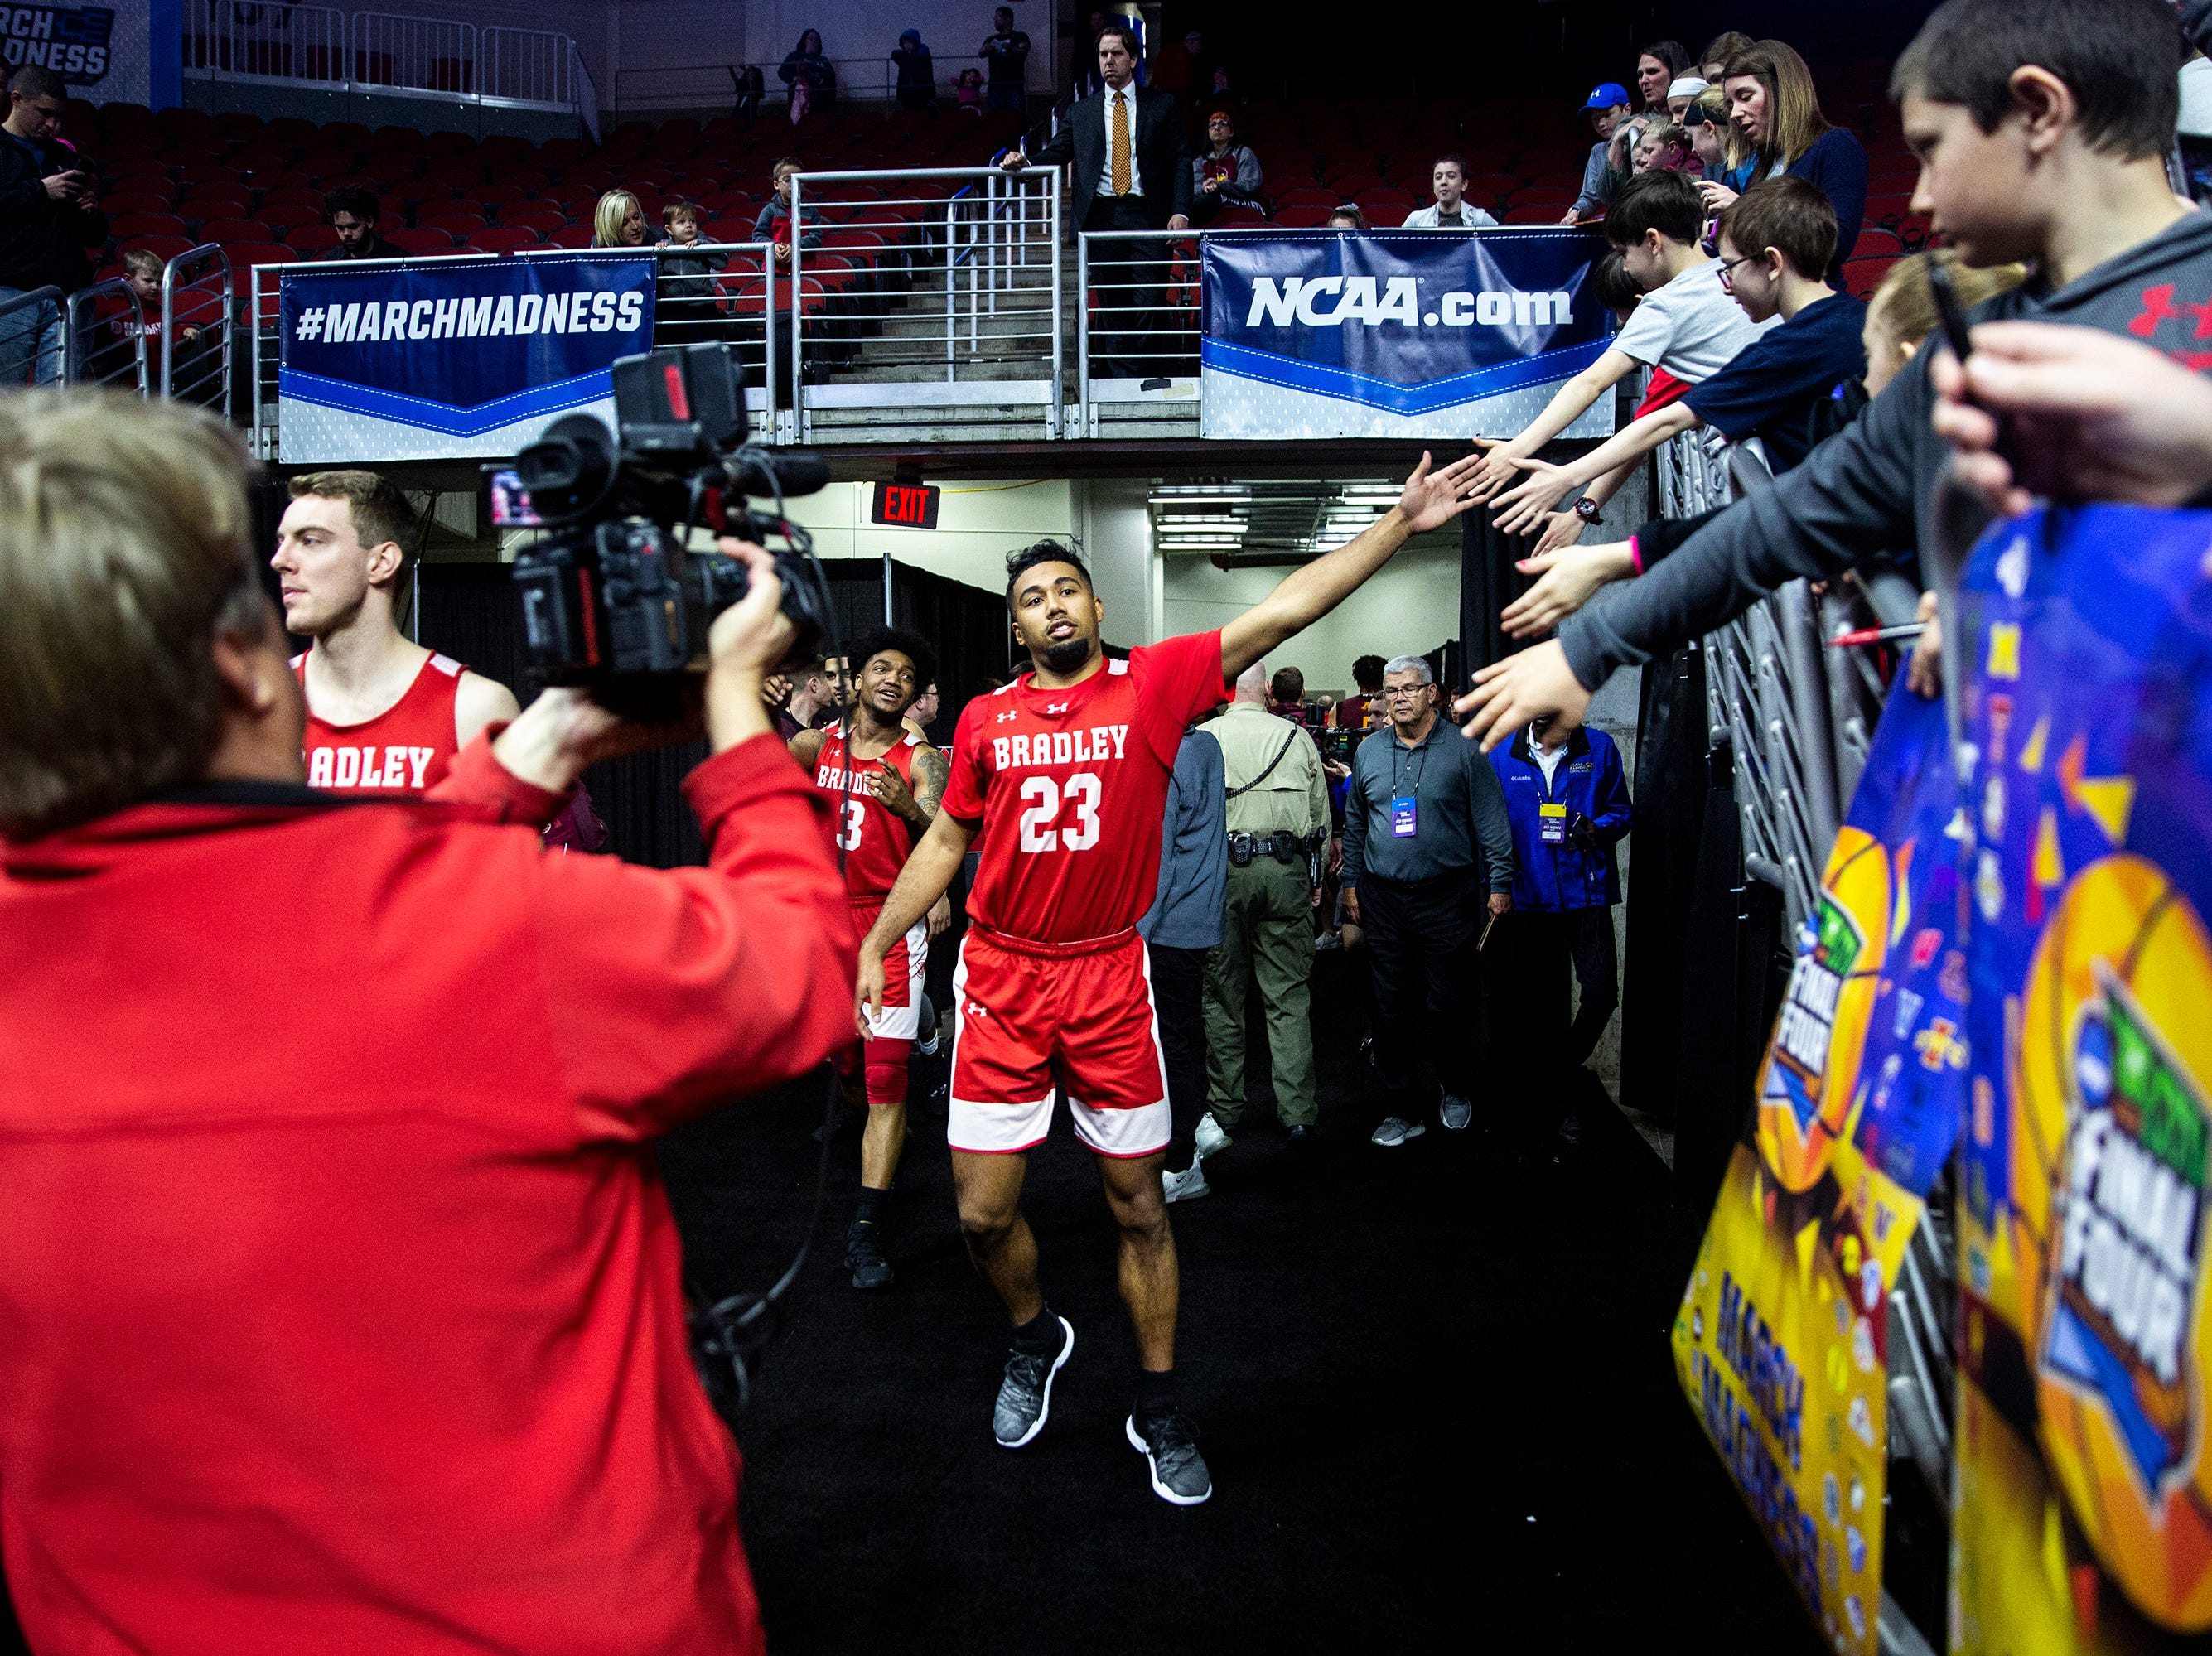 Bradley's Dwayne Lautier Ogunleye gives fives to people in the stands before Bradley's open practice before the first round of the NCAA Men's Basketball Tournament on Wednesday, March 20, 2019, at Wells Fargo Arena in Des Moines, Iowa.